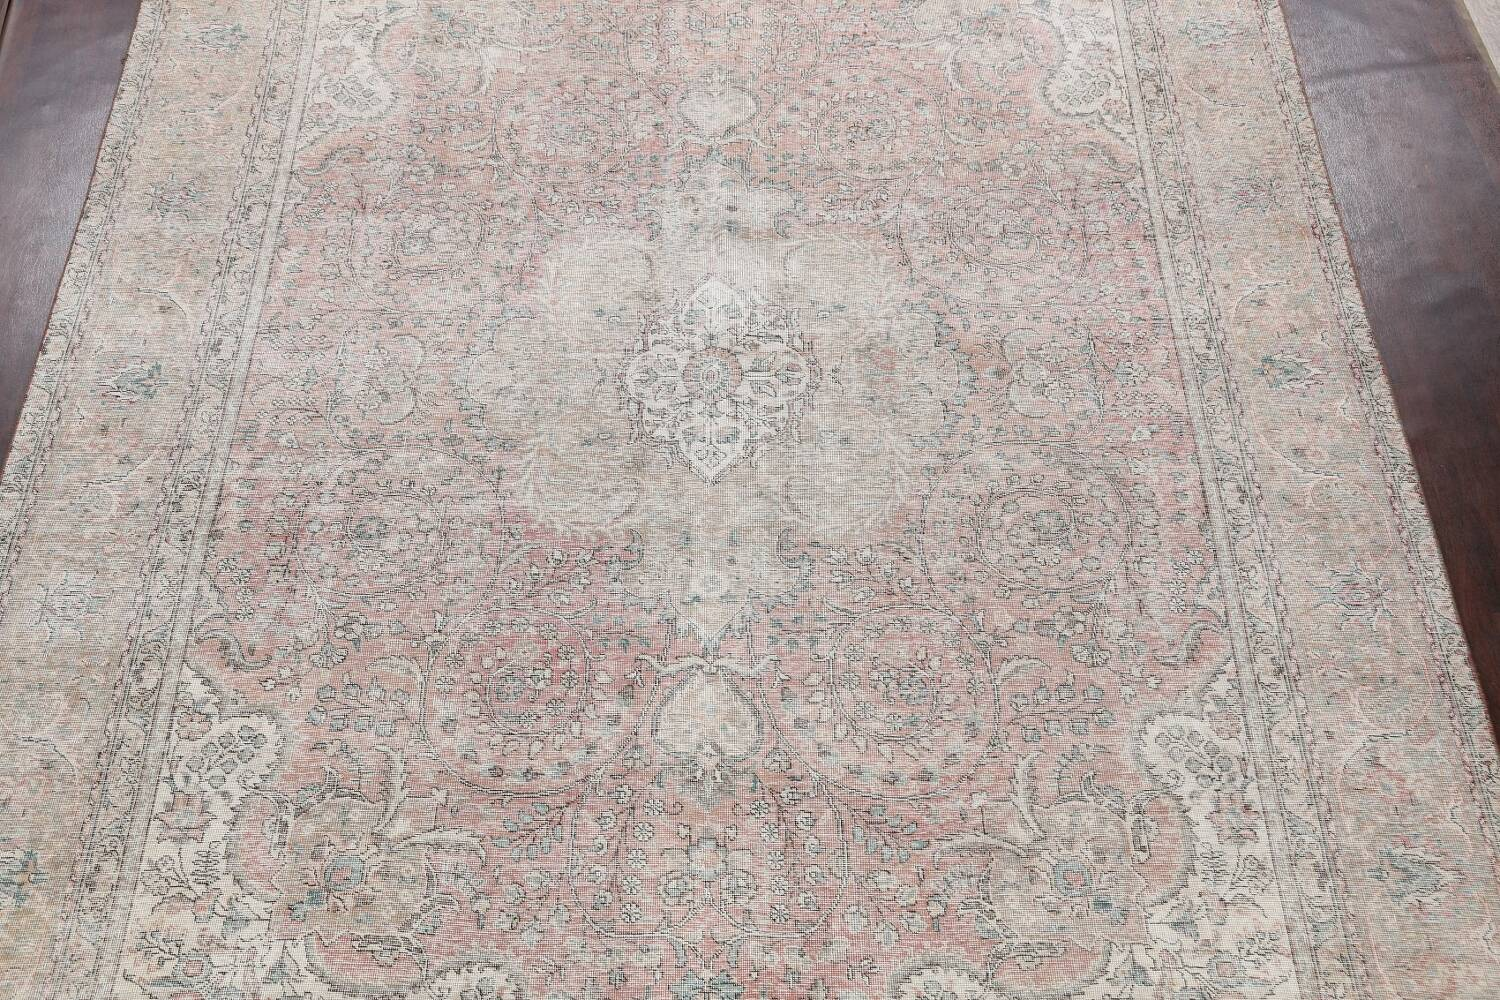 Antique Muted Distressed Tabriz Persian Area Rug 10x13 image 3